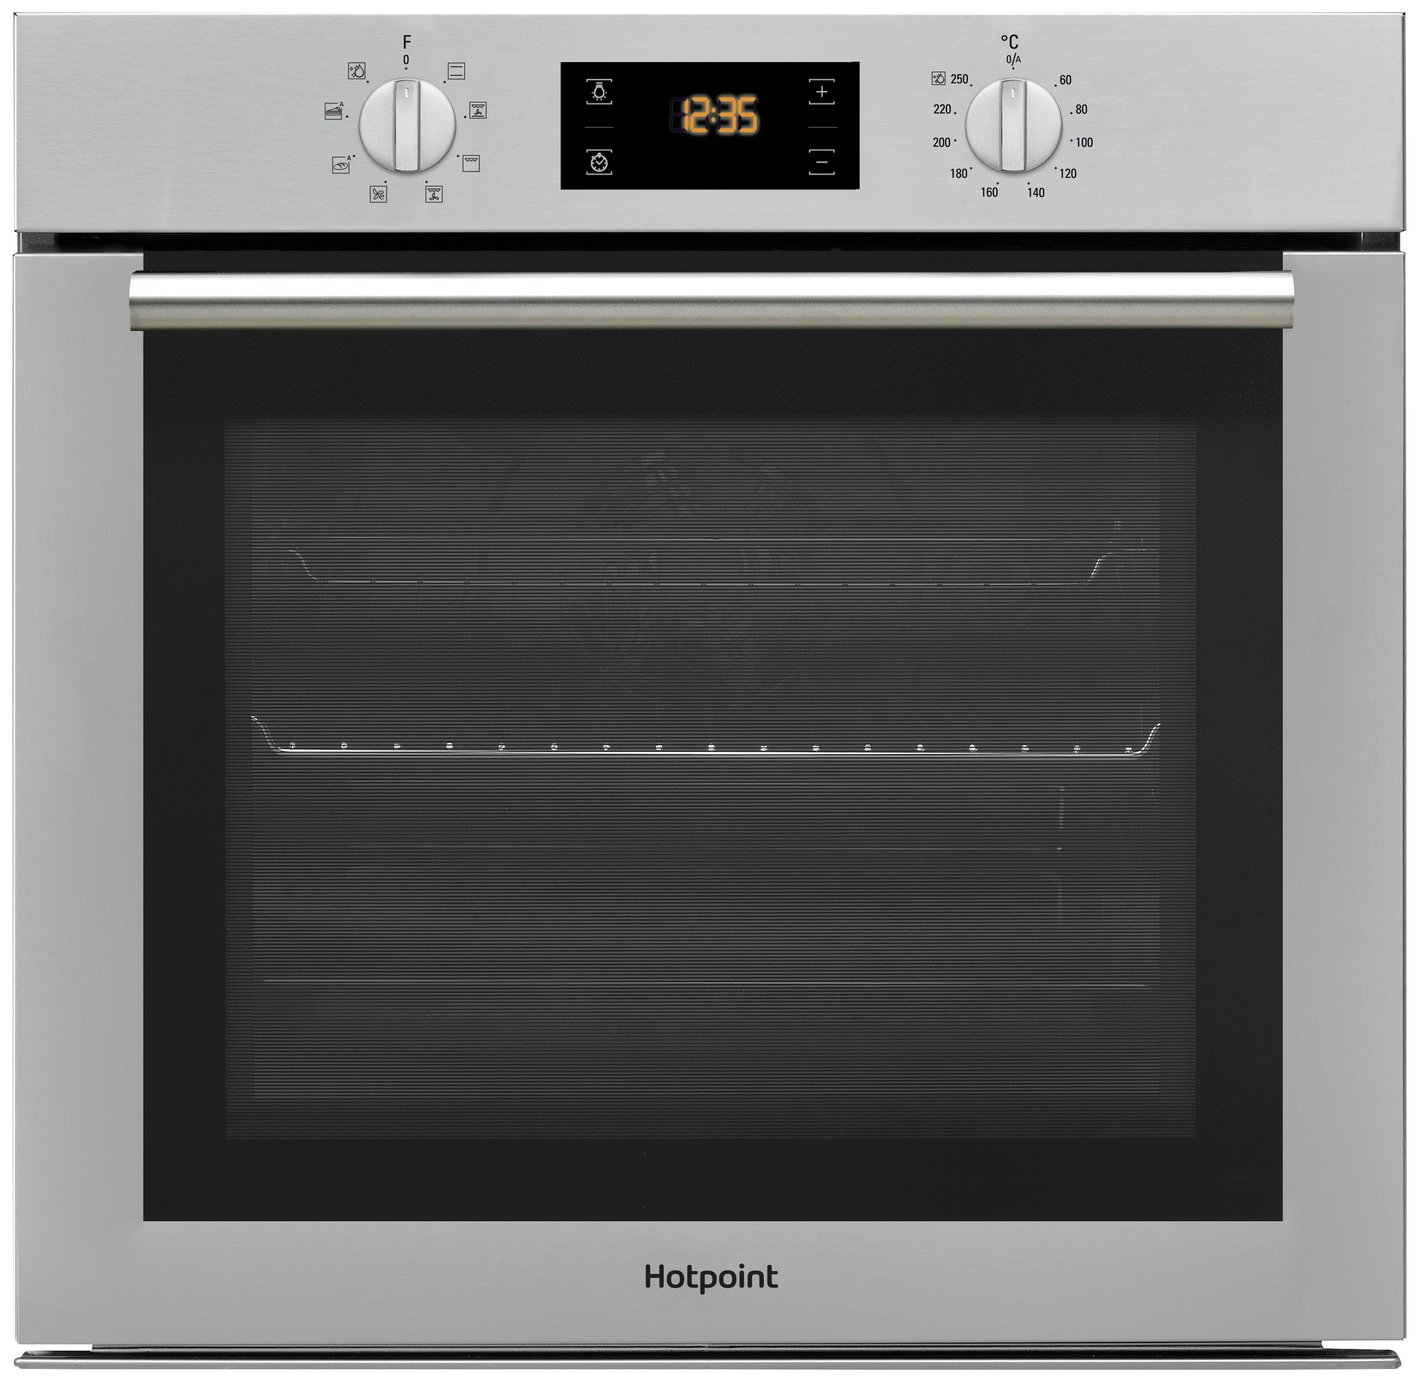 Hotpoint - SA4544HIX Electric Fan Oven - Stainless Steel